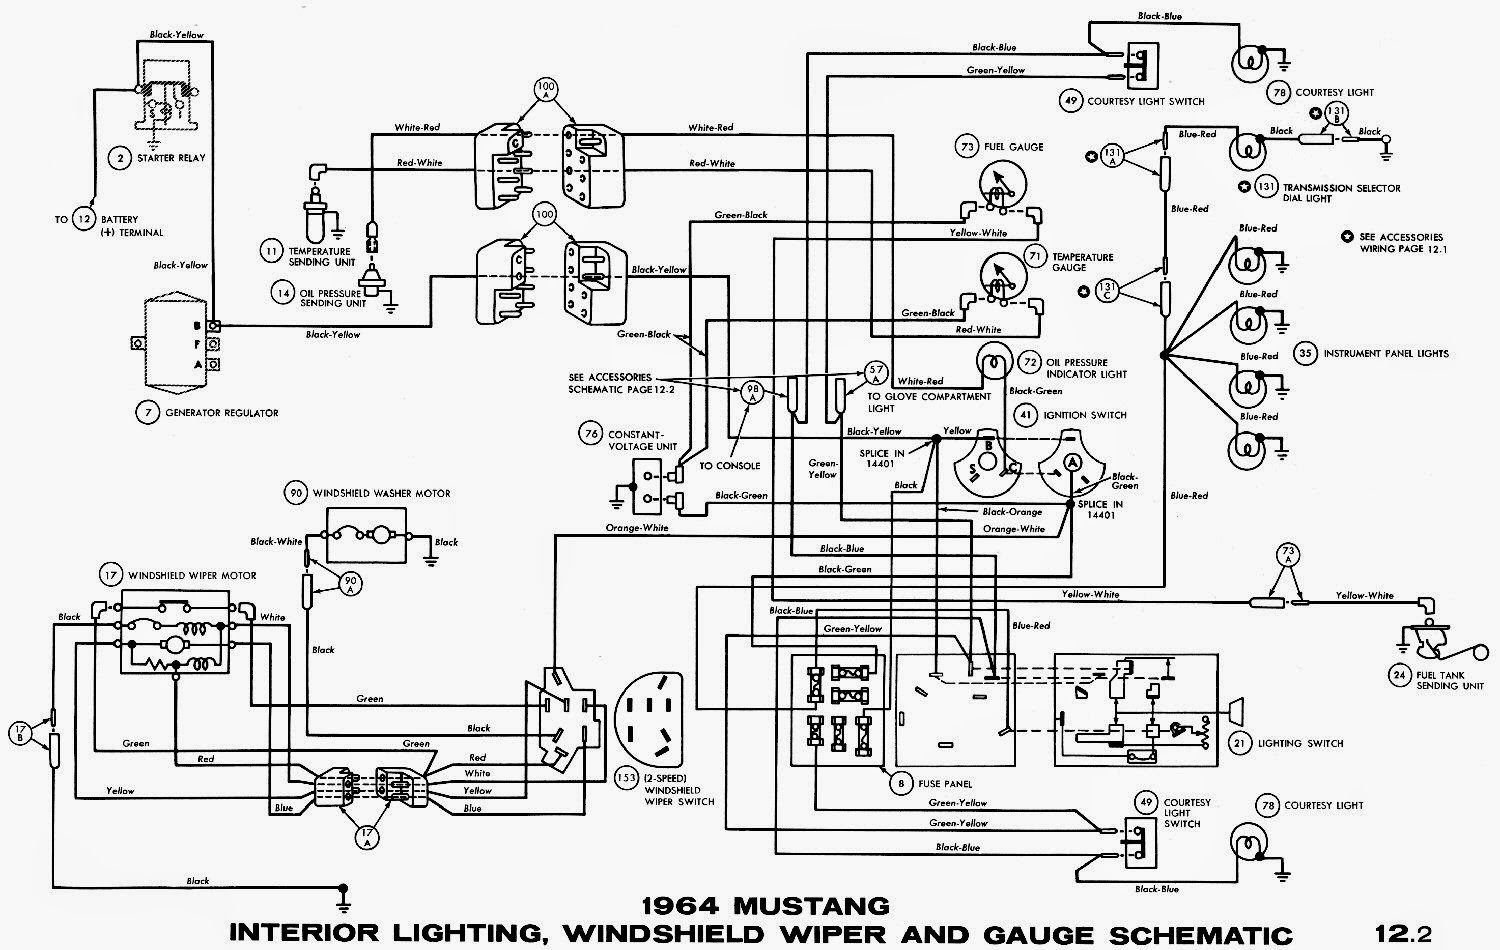 1964 mustang wiring diagrams schematic wiring diagrams rh freewiringdiagrams blogspot com mustang wiring diagram 2015 65 mustang wiring diagram